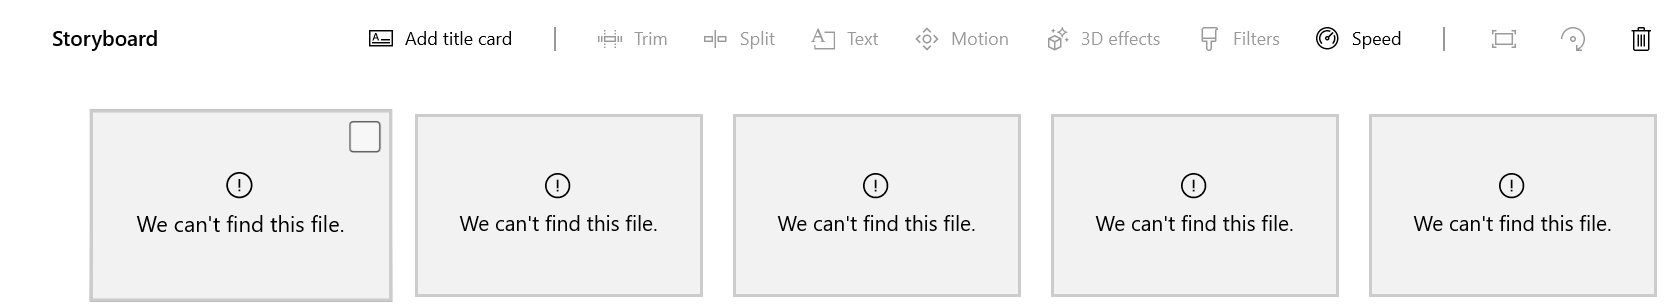 """We can't find this file"" Video Editor - I'm at a lost. 907b6b0a-e266-450a-b3bc-255caf5fe81a?upload=true.png"